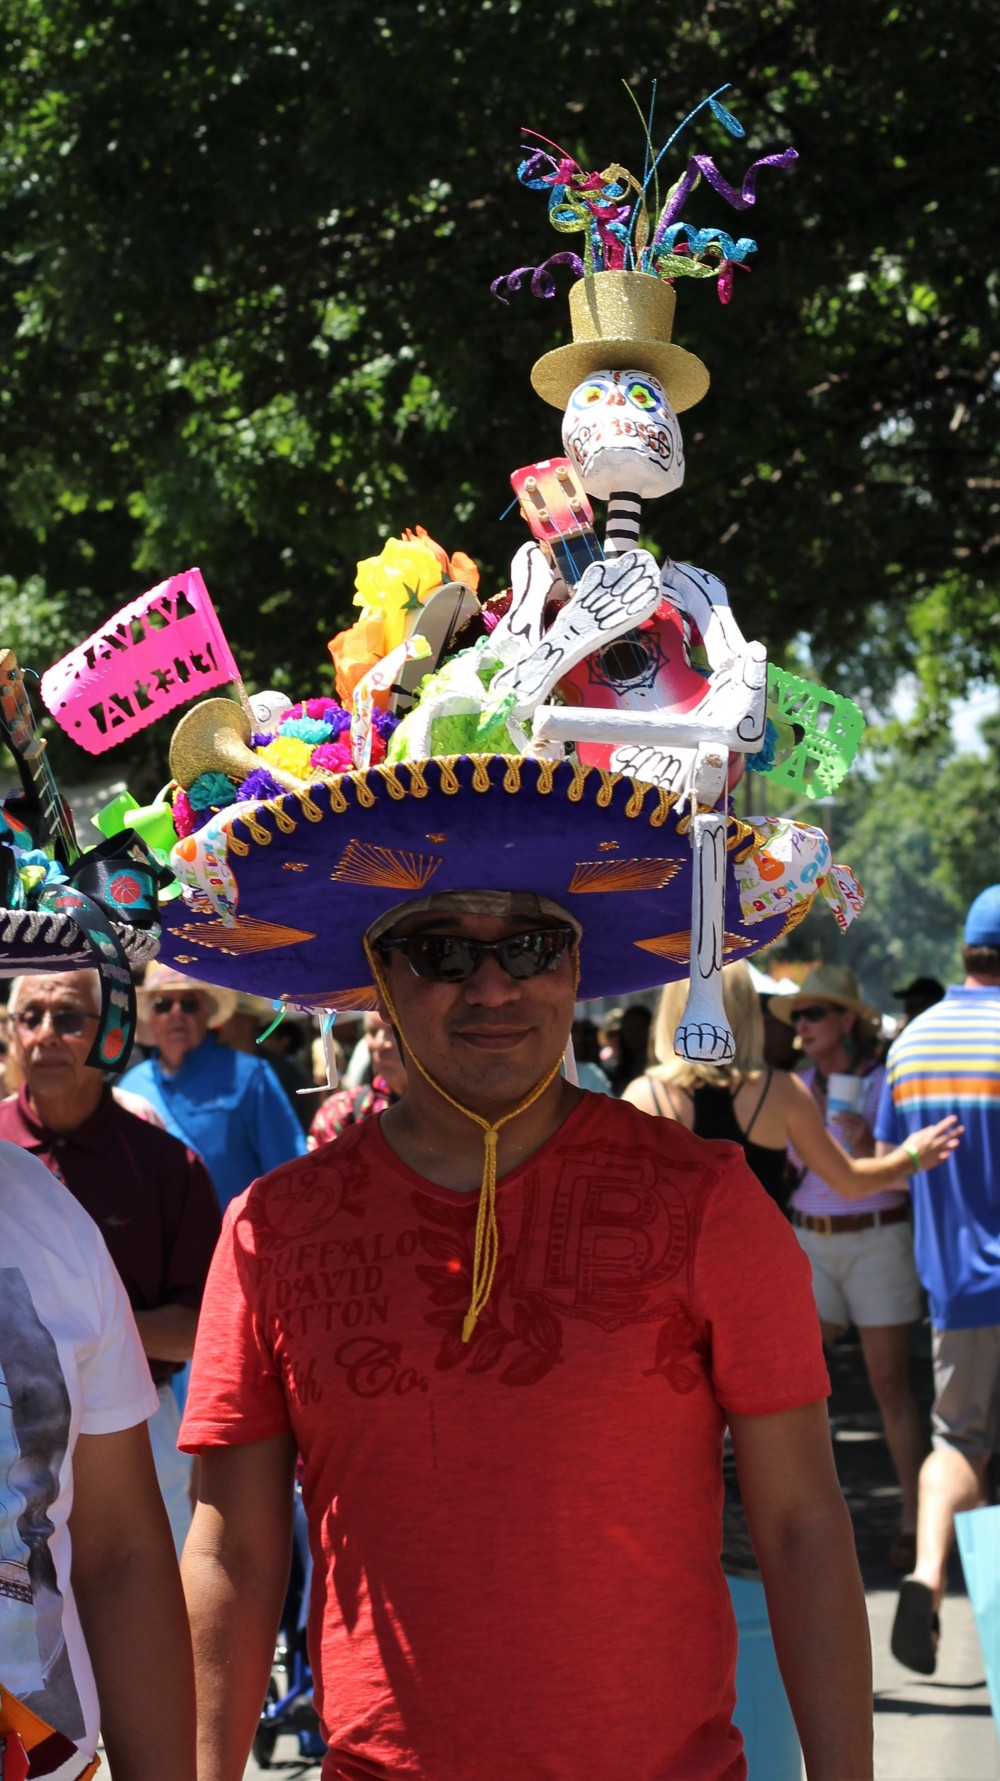 KIng William Fair, King William Association, Fiesta, San Antonio, Texas